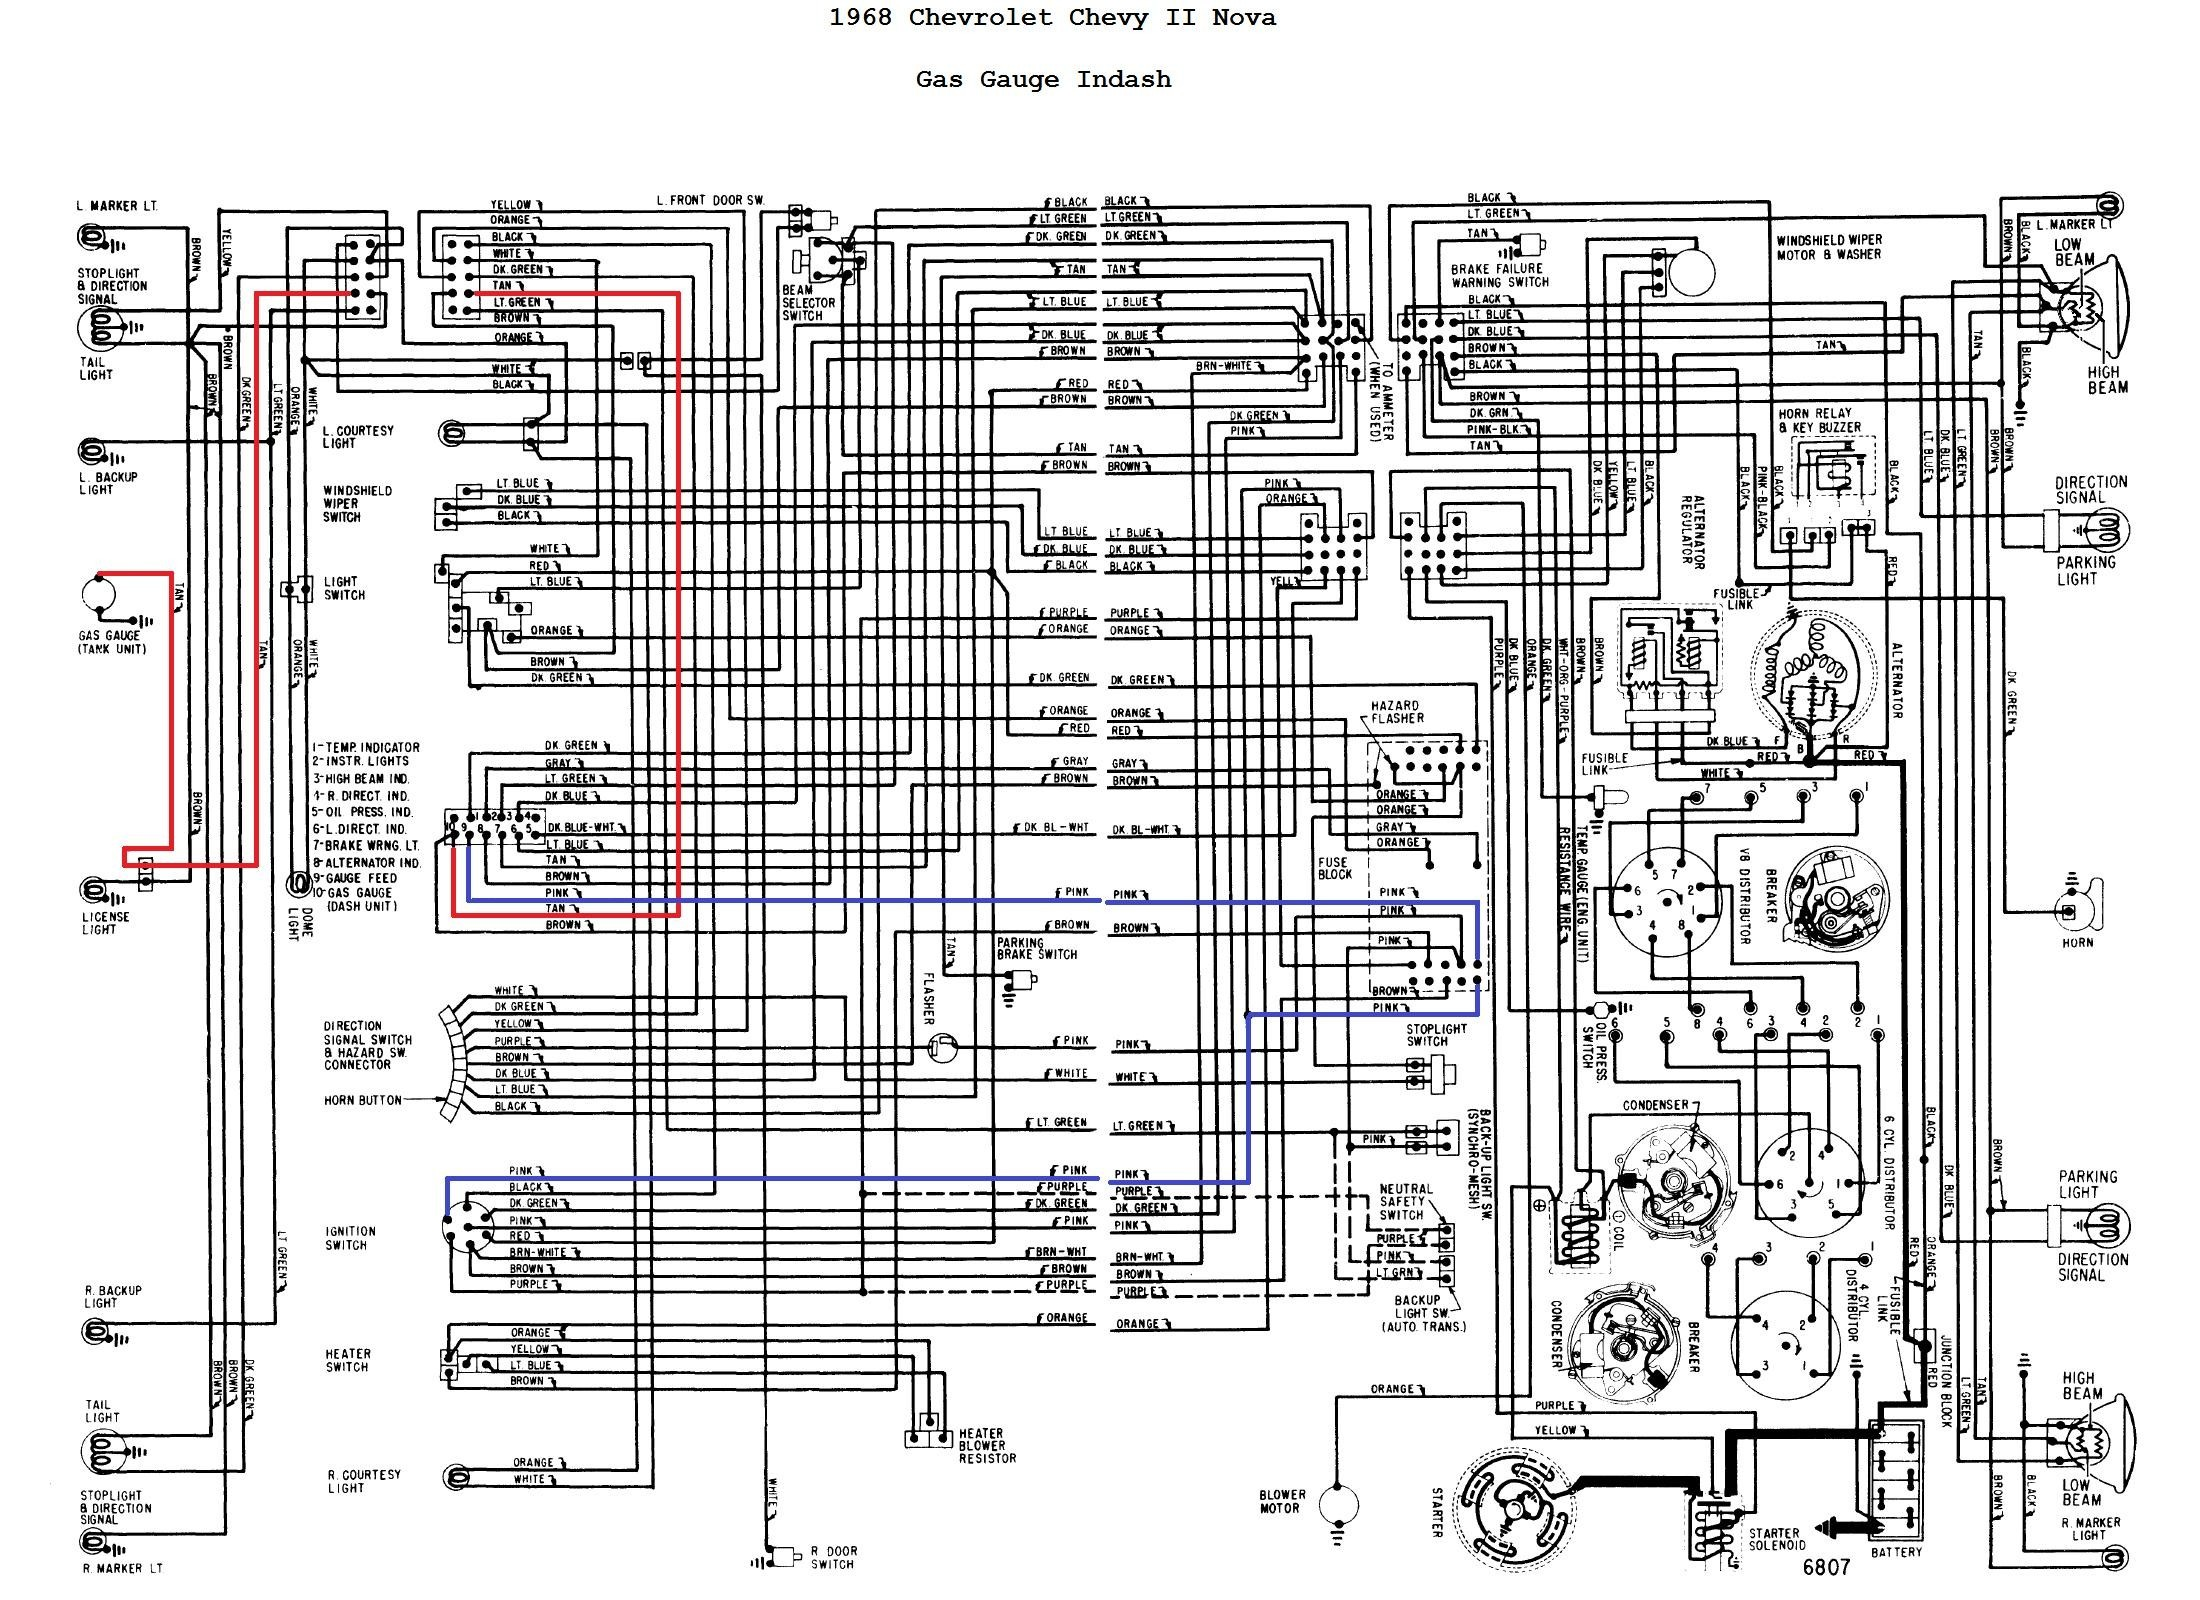 dodge alternator wiring 1968 d100 wiring diagram wiring diagram data dodge cummins alternator wiring diagram 1968 d100 wiring diagram wiring